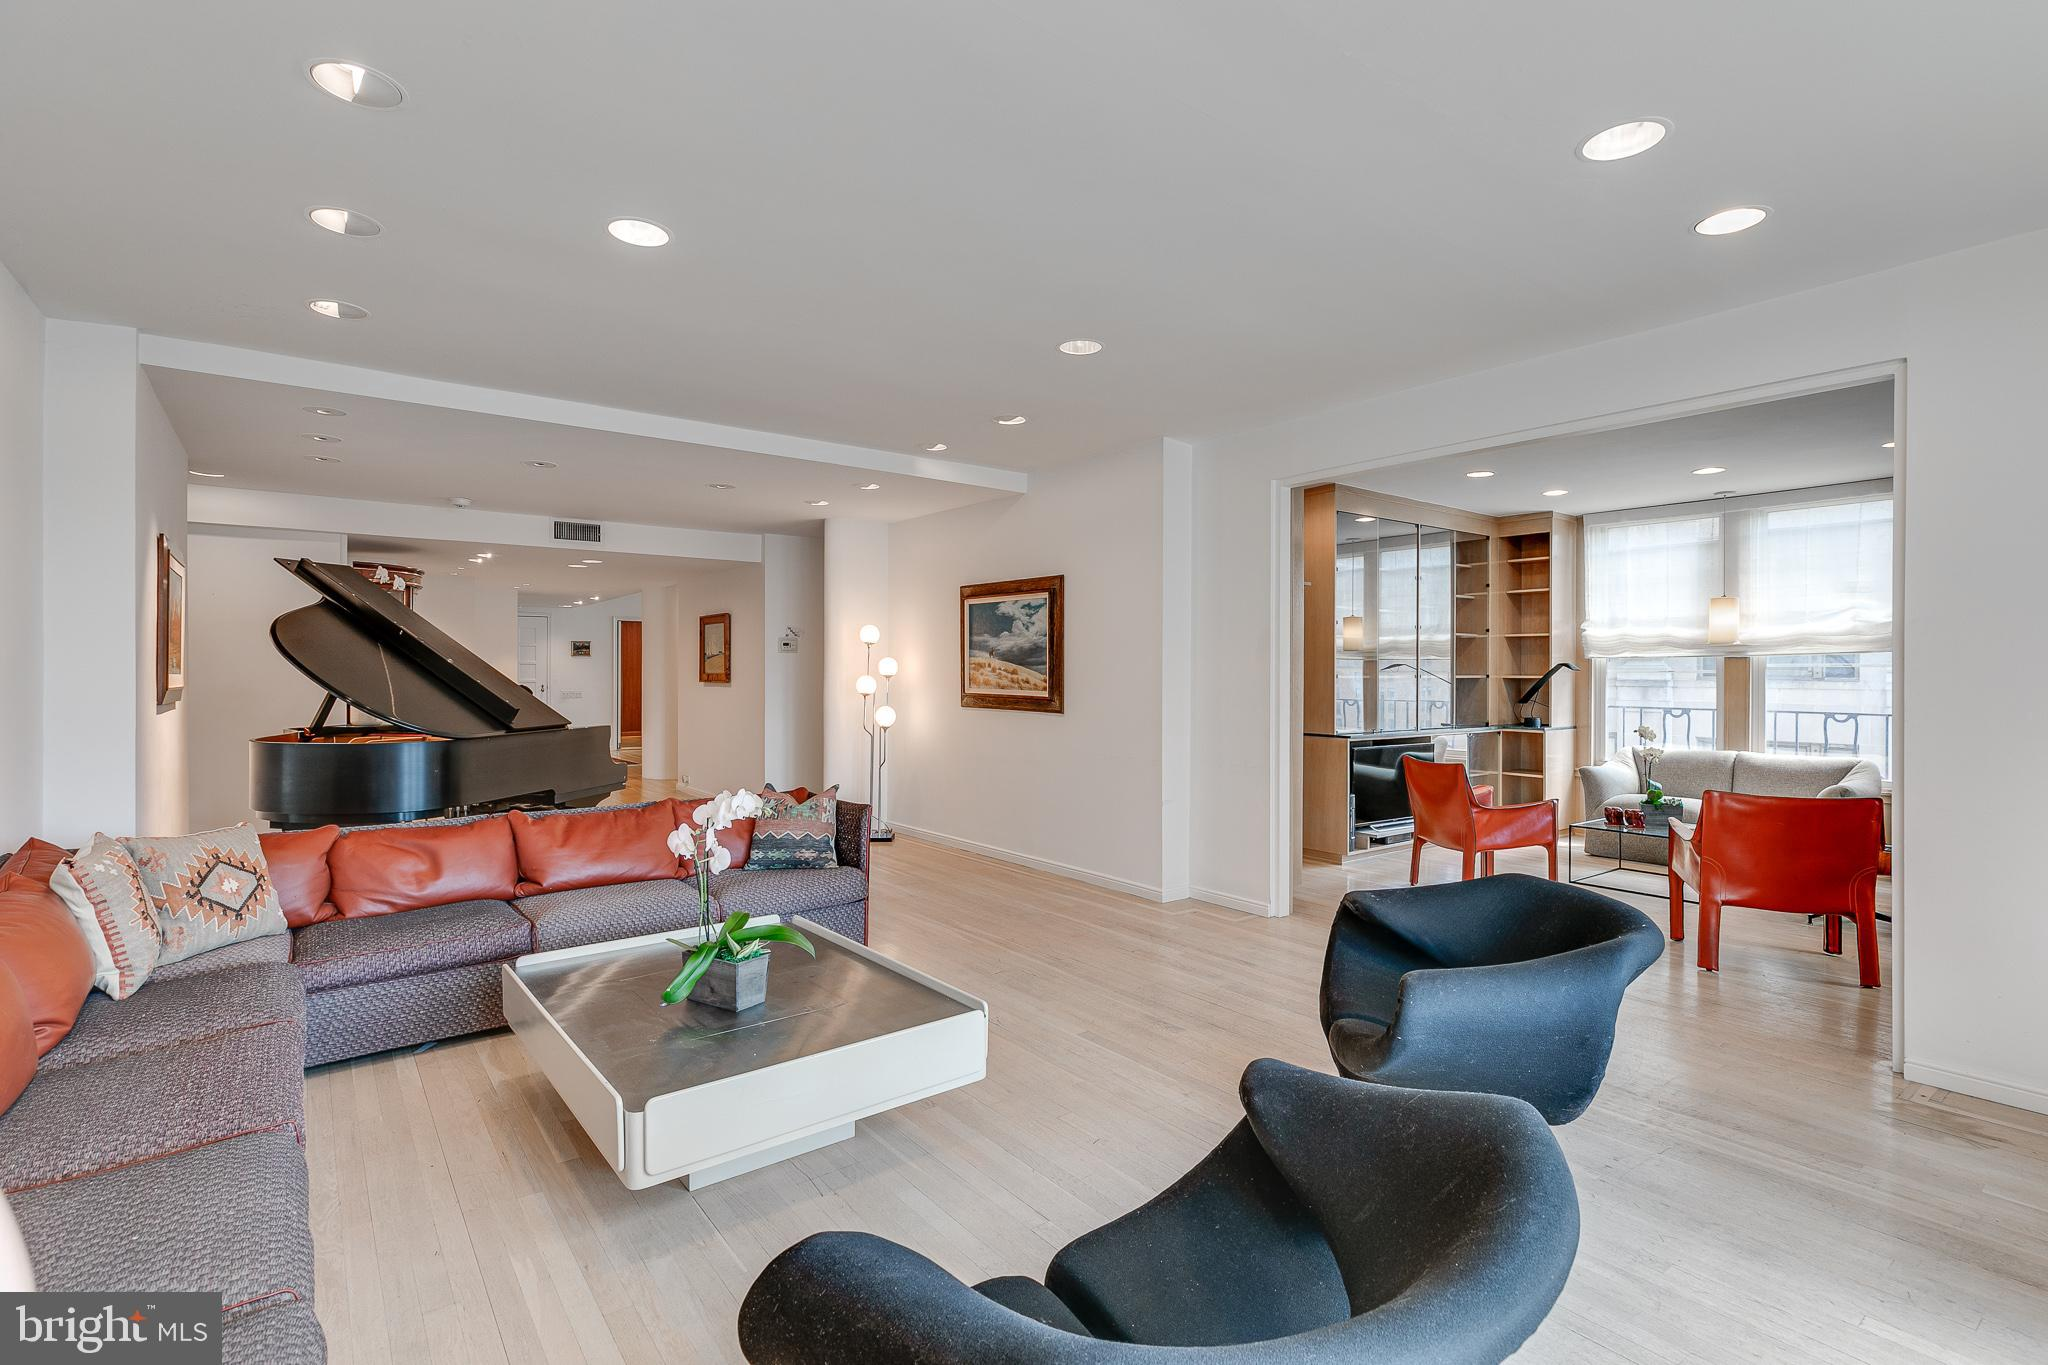 This bright, corner three bedroom and three bathroom home at The Rittenhouse Plaza has all the layout and design flexibility a new buyer could only hope for. The gracious entry foyer leads to an oversized living room with three exposures providing open magnificent Rittenhouse Square Park views with great light all day long. There are bleached oak floors and high ceilings throughout. The large living room is adjacent to a windowed library and partially separate dining room, allowing for both intimate entertaining as well as larger parties. The functional eat-in kitchen offers ample counter space and easy flow. The new owner also has the option of making these rooms into one spectacular great room for a more modern space.  The master bedroom suite has additional closet space as well as a generous en-suite master bath. There are two additional well-proportioned bedrooms both with en-suite baths. As an added bonus, this wing has a functional windowed, dual workspace/home office. The third bathroom serves wonderfully as a guest powder room and can also double as a dedicated bath if the added privacy is preferred. There is an abundance of storage and closet space throughout.  The Rittenhouse Plaza, 1901 Walnut Street, is a full-service coop with a full-time doorman. The building is situated in the perfect location on Rittenhouse Square surrounded by the best restaurants, chic boutique shopping, and all modes of transportation for your convenience. There is a 1% flip tax paid by the purchaser. The building allows pets with restrictions.